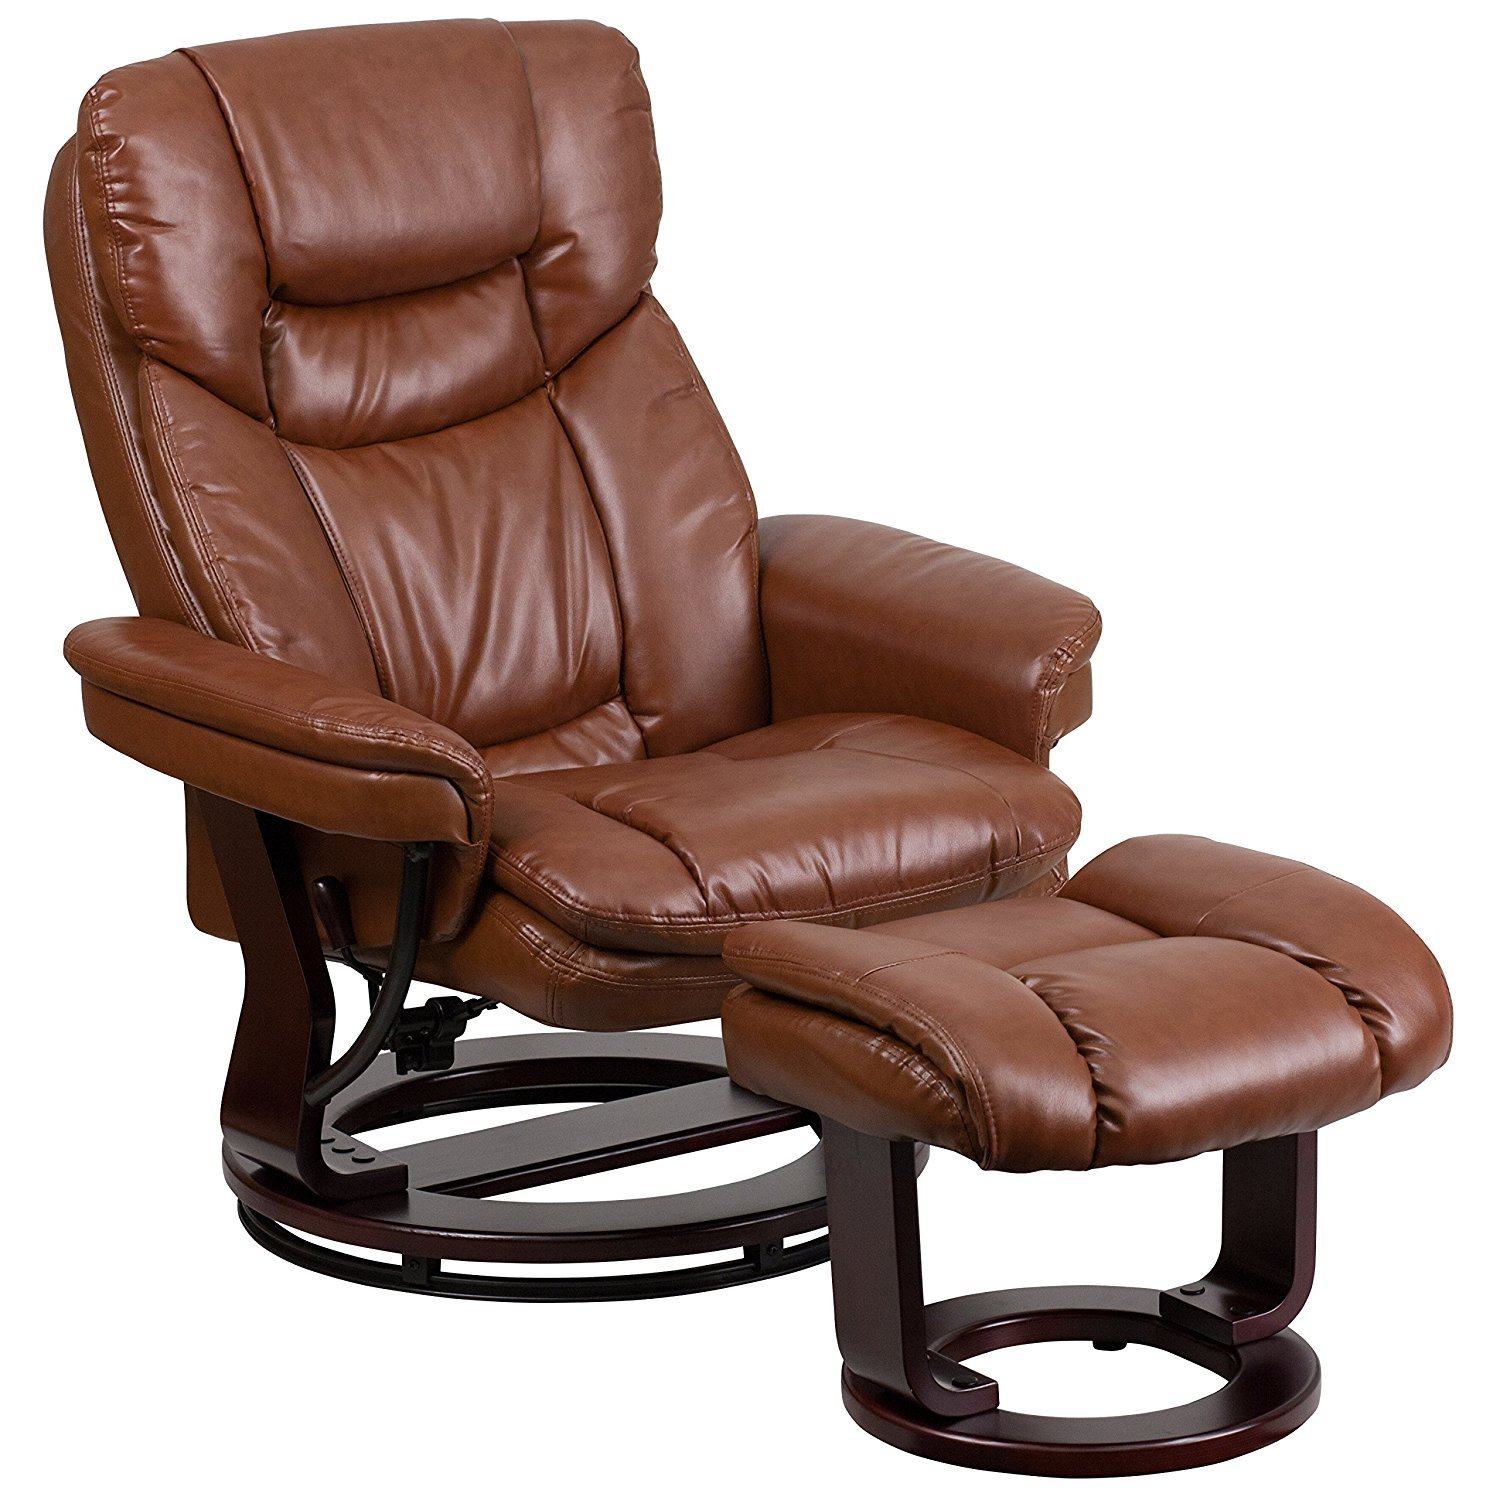 Leather swivel chairs for living room home furniture design for Swivel chairs for living room